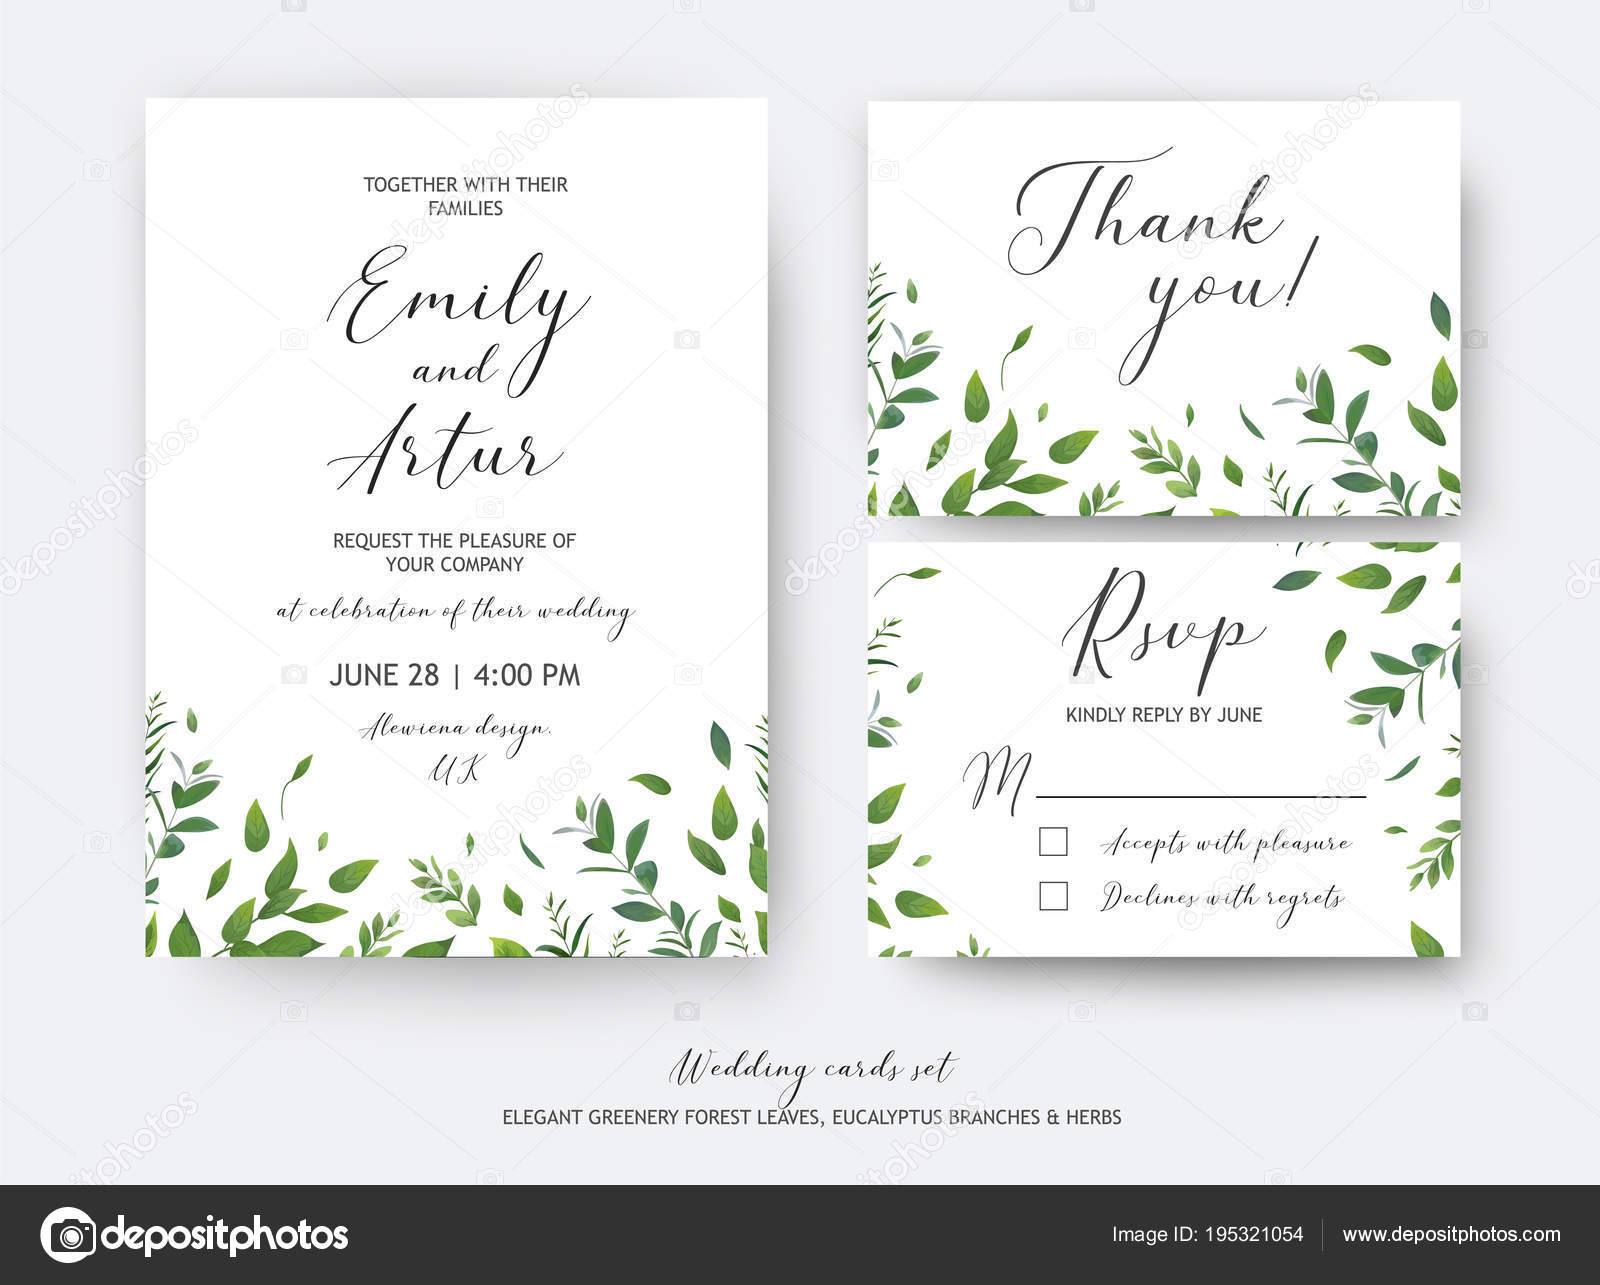 wedding invite invitation rsvp thank you cards vector art design